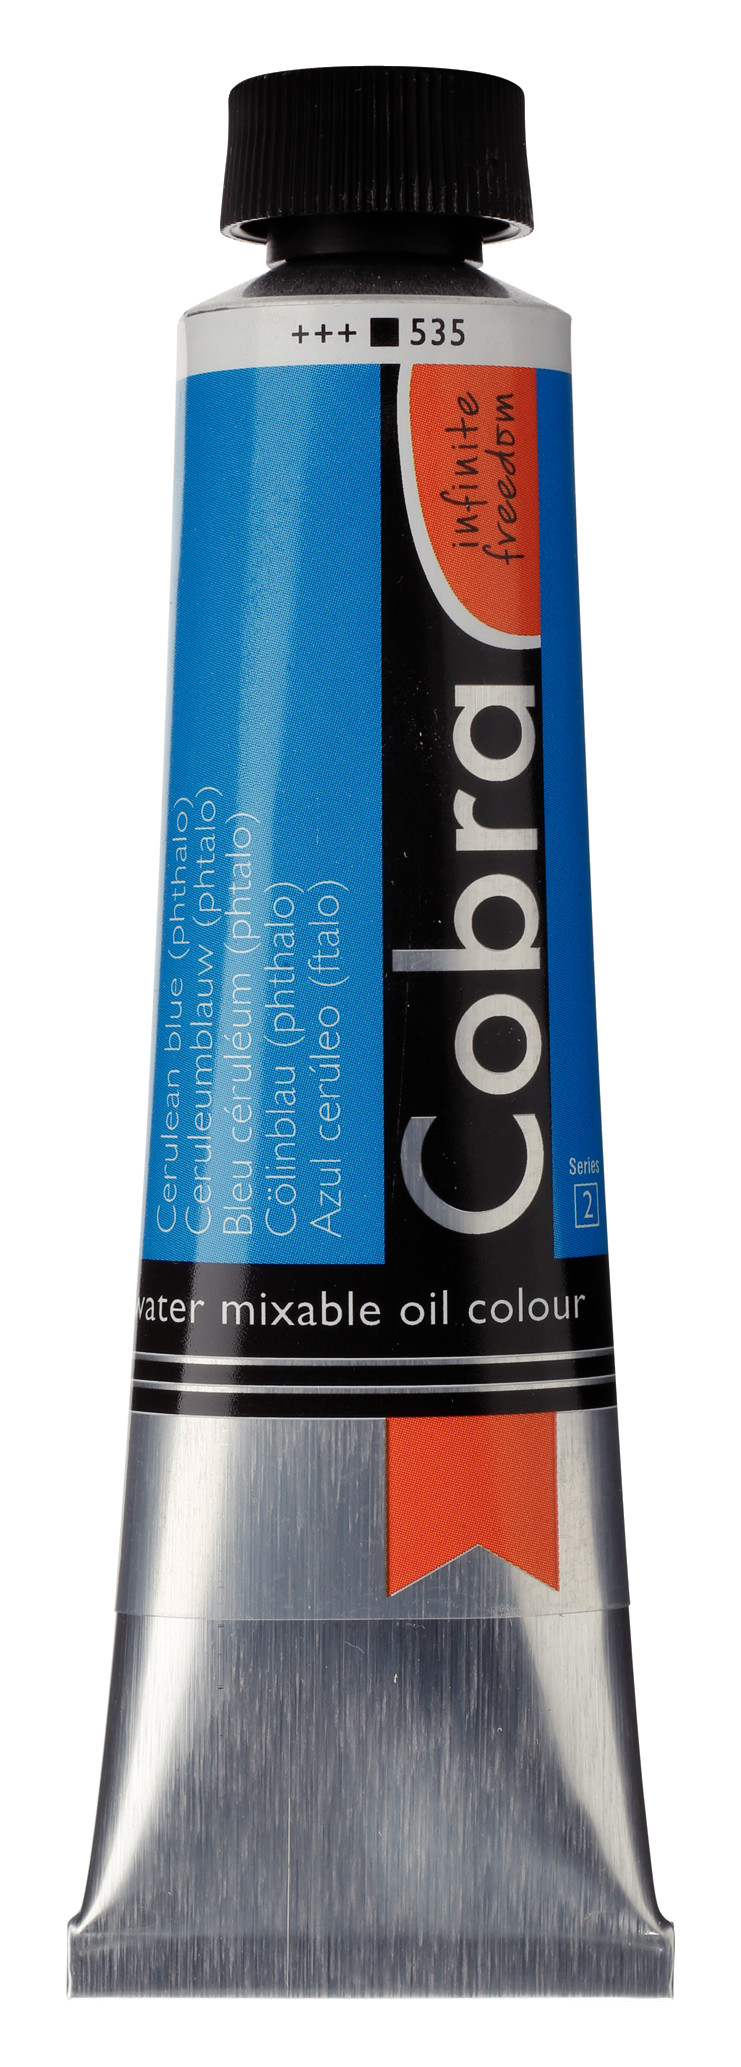 Cobra Artist Water Mixable Oil Colour Tube 40 ml Cerulean blue (phthalo) 535